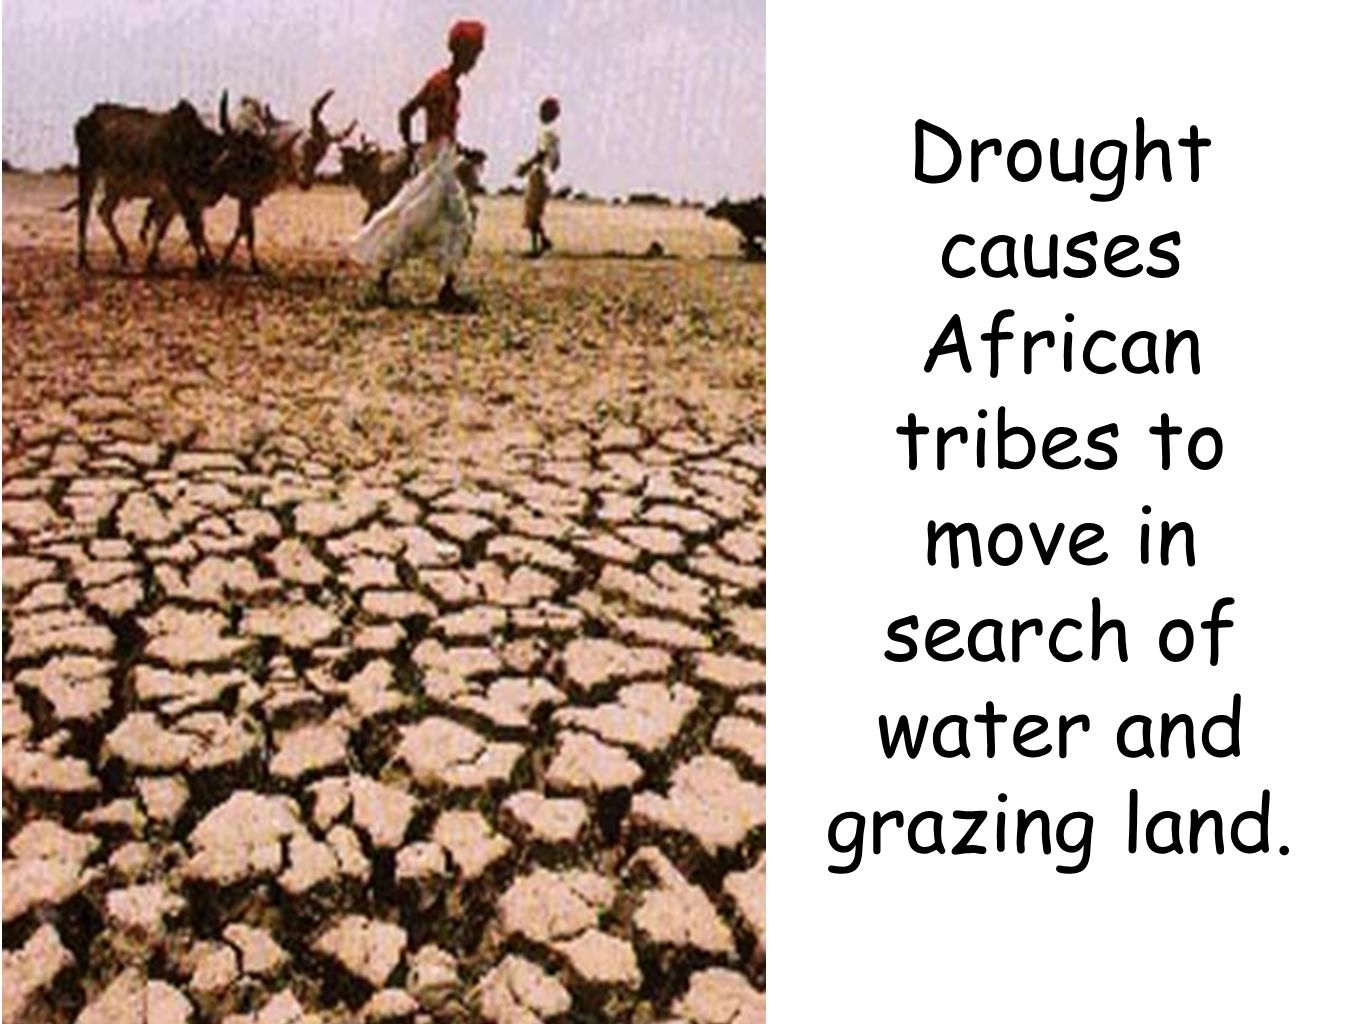 Drought causes African tribes to move in search of water and grazing land.